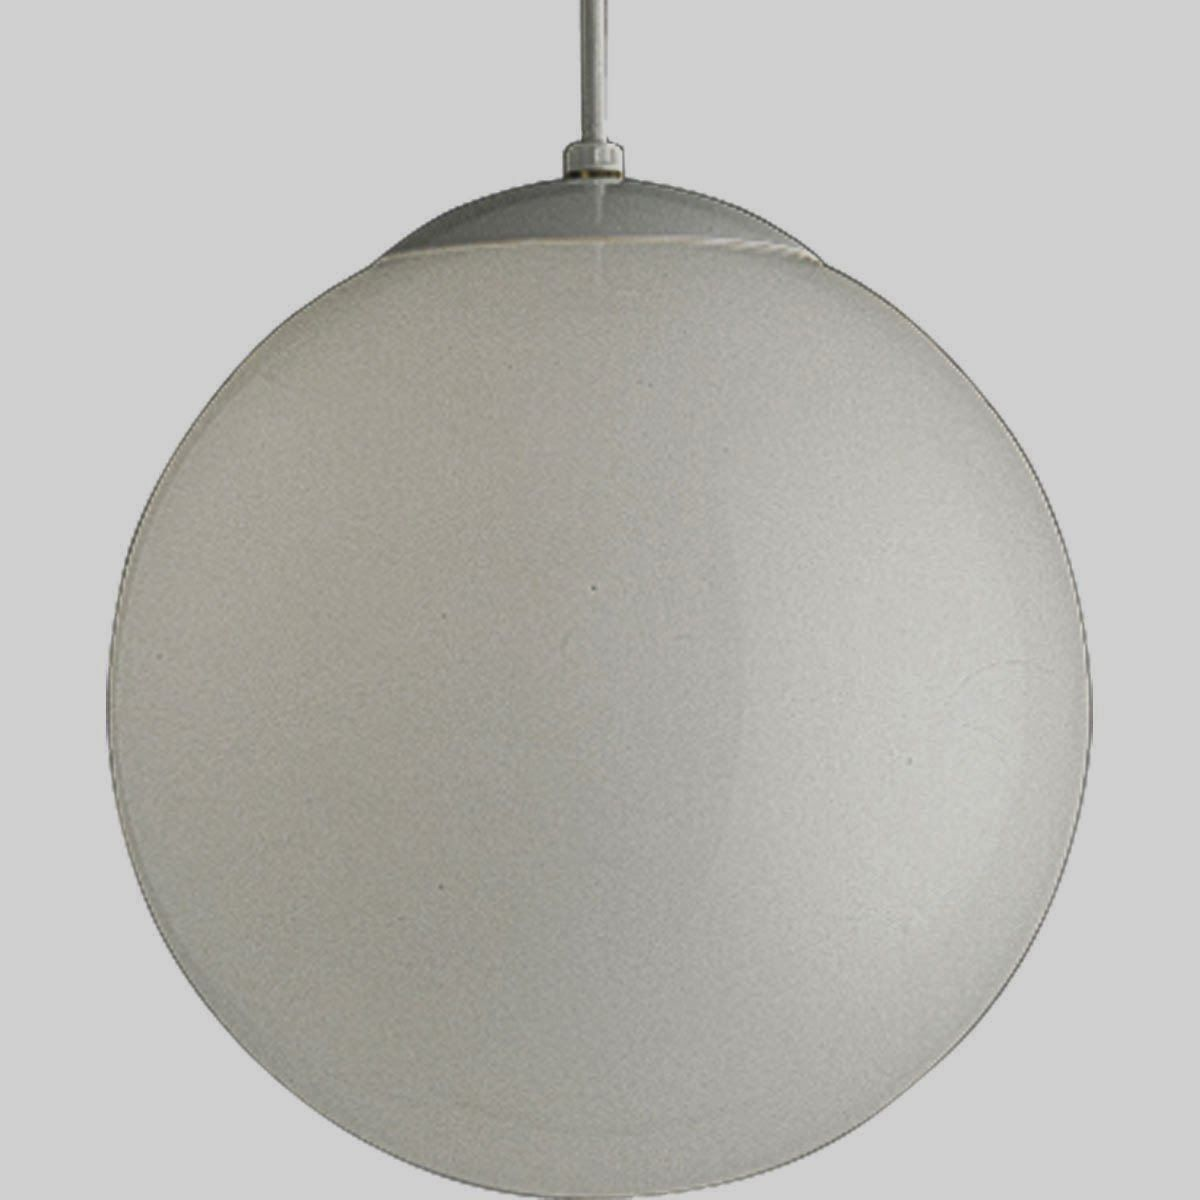 Mid Century Modern Globe Porch Light   Glad To Know They Make Reproductions